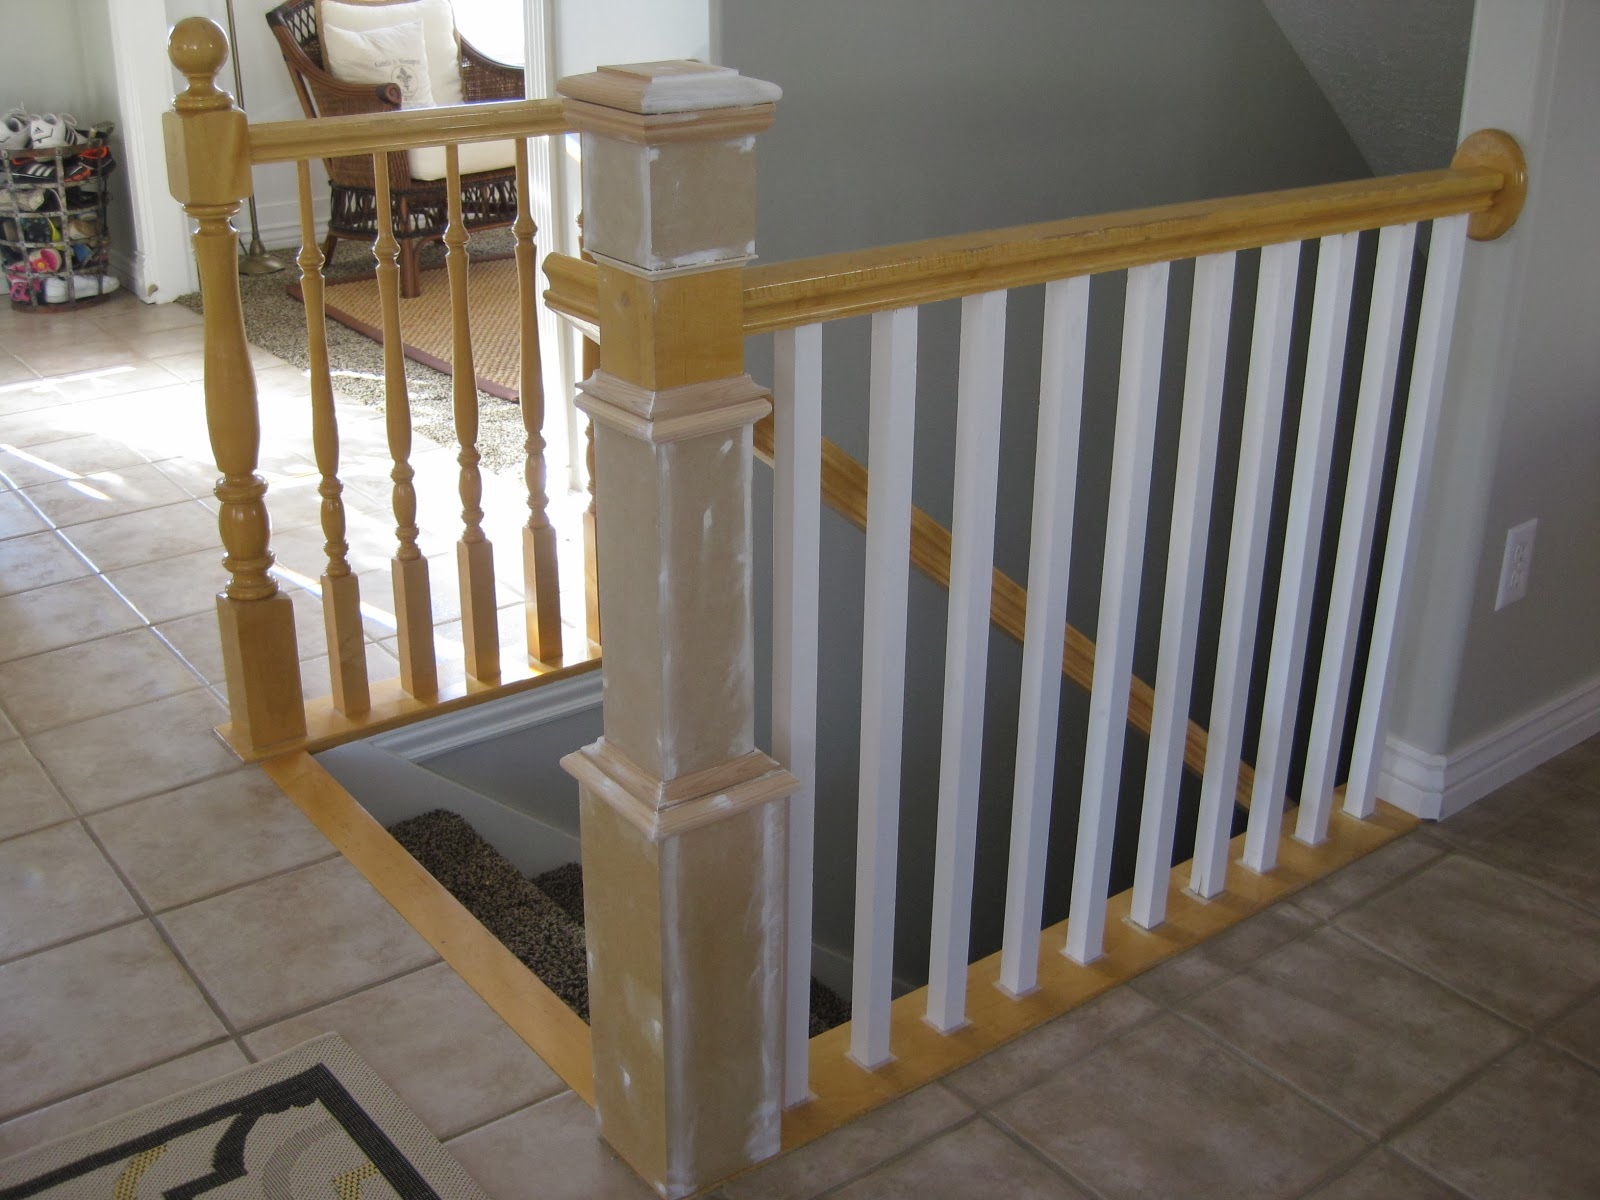 Replace Stair Banister Spindles And Newel Post Diy Tda Decorating Design Featured On